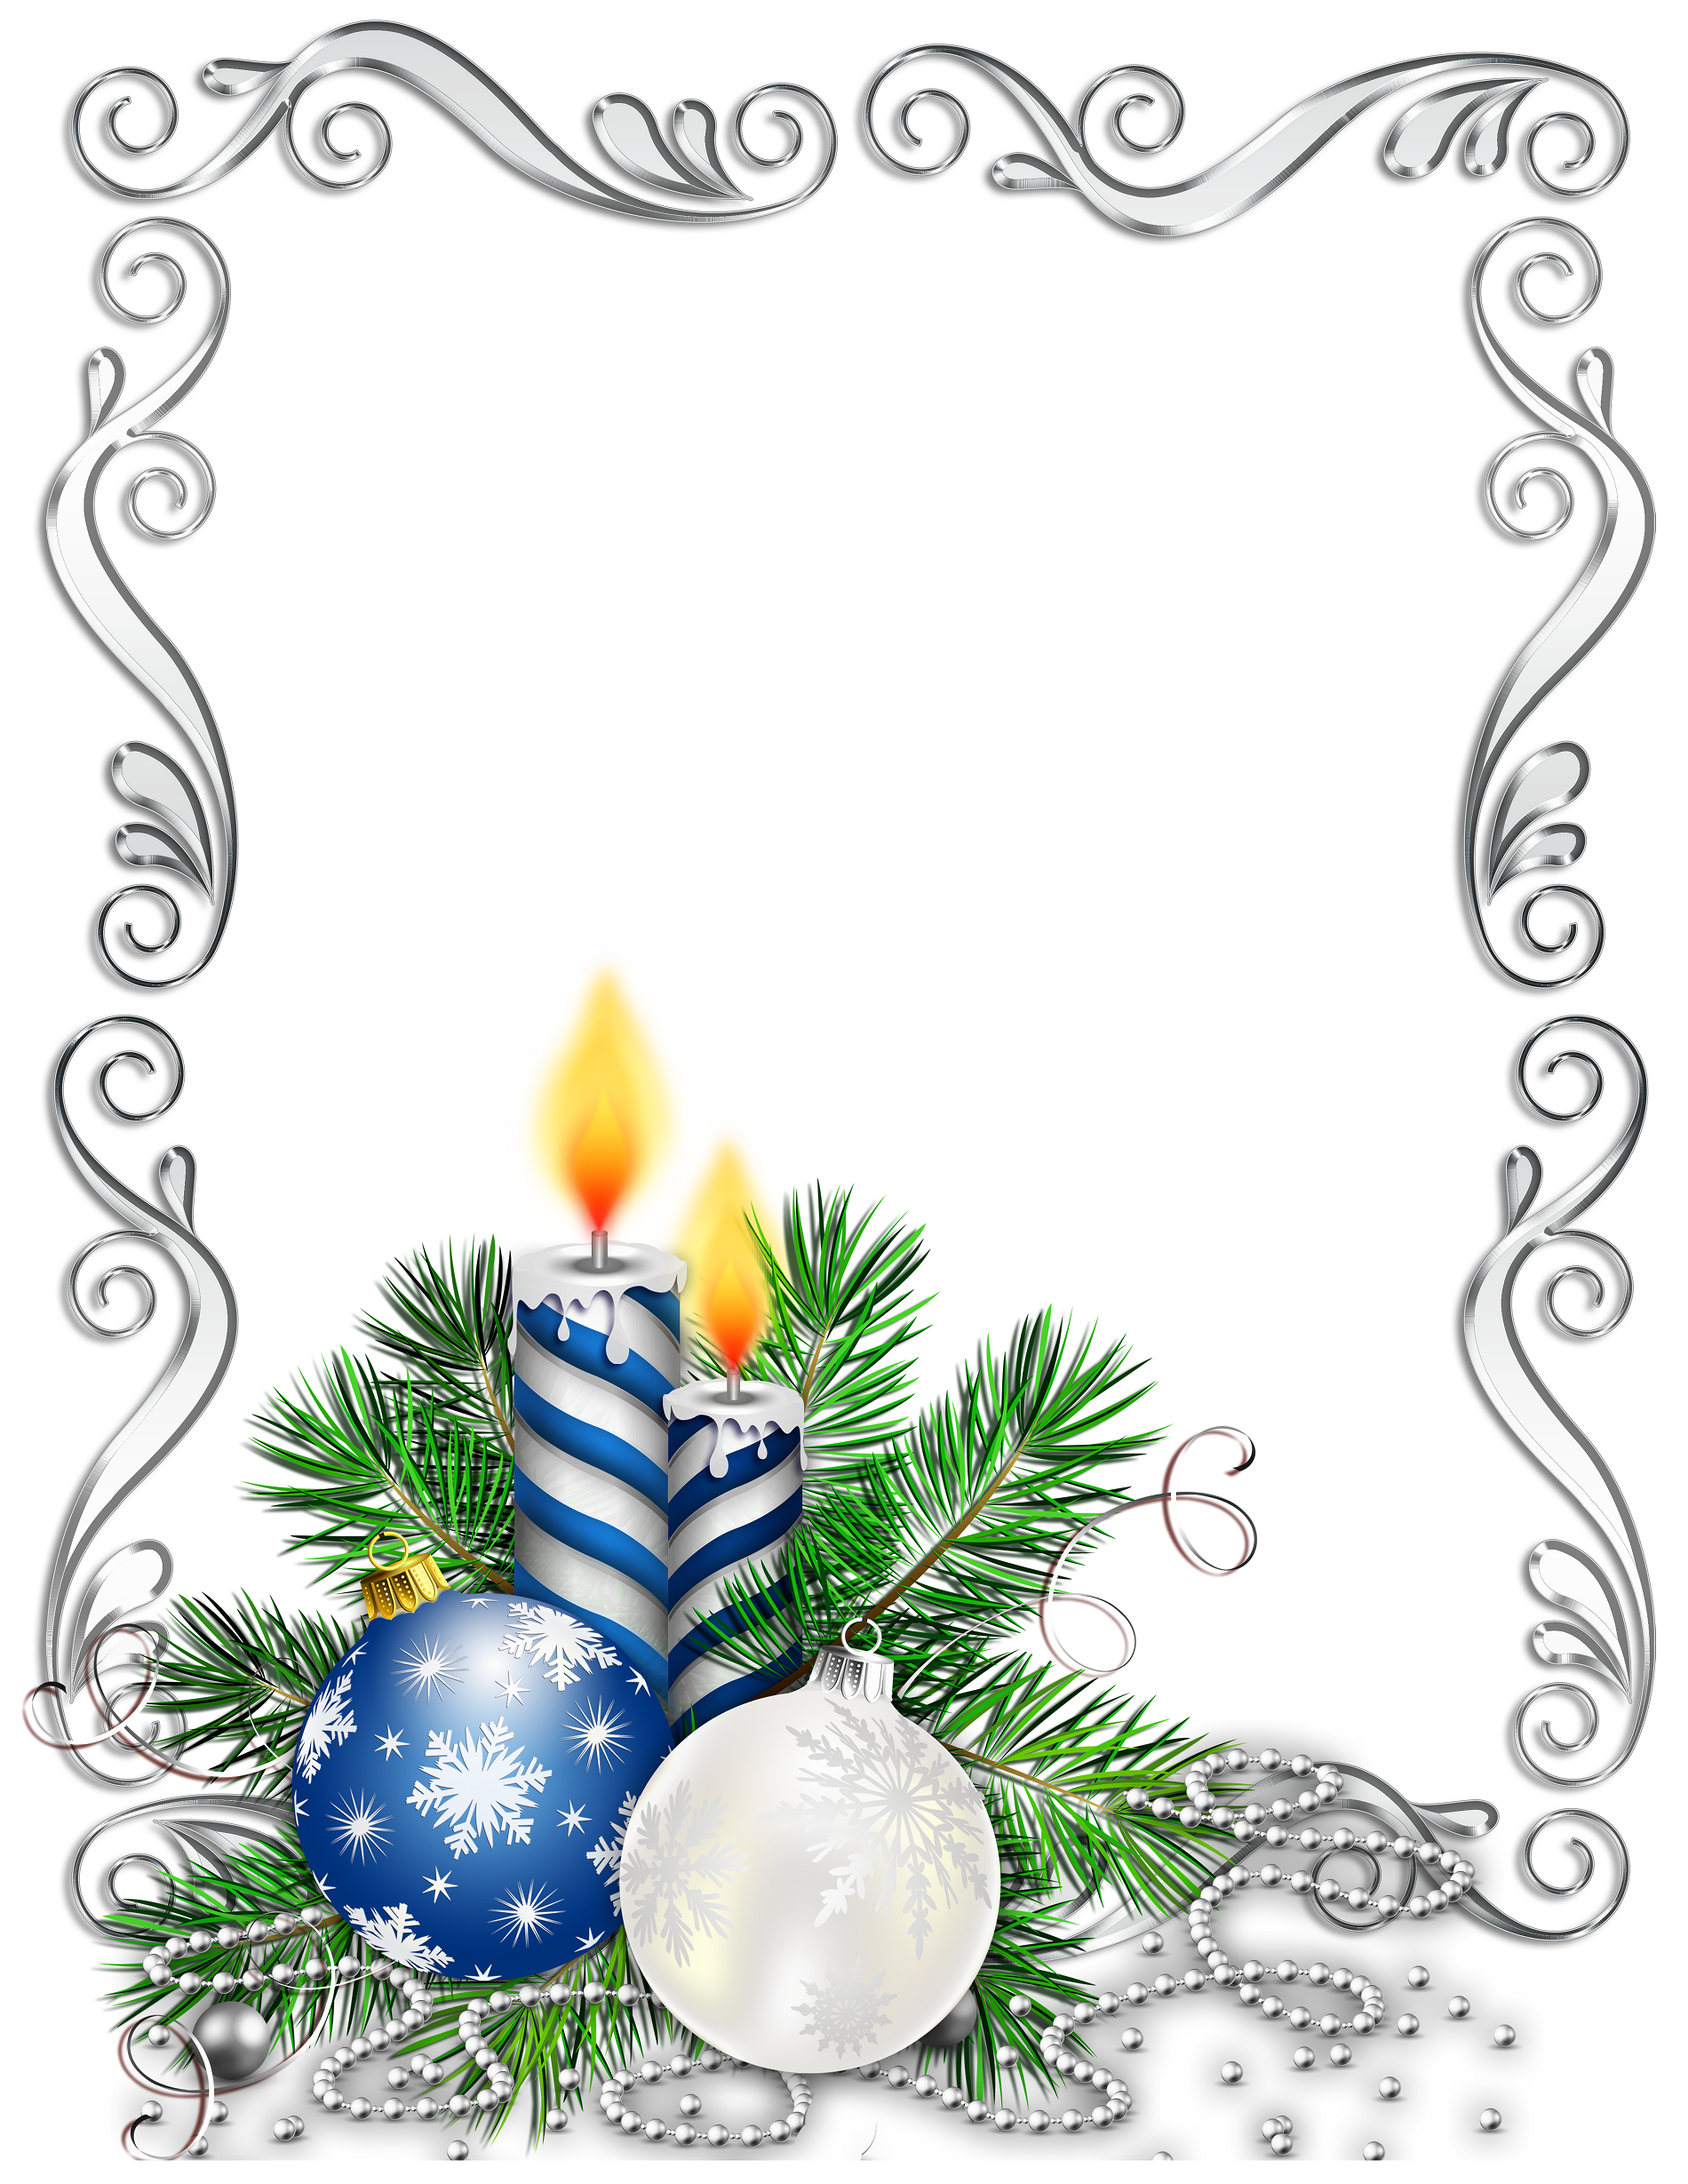 Christmas frame with bulbs and candles silver and blue | Ramki ...